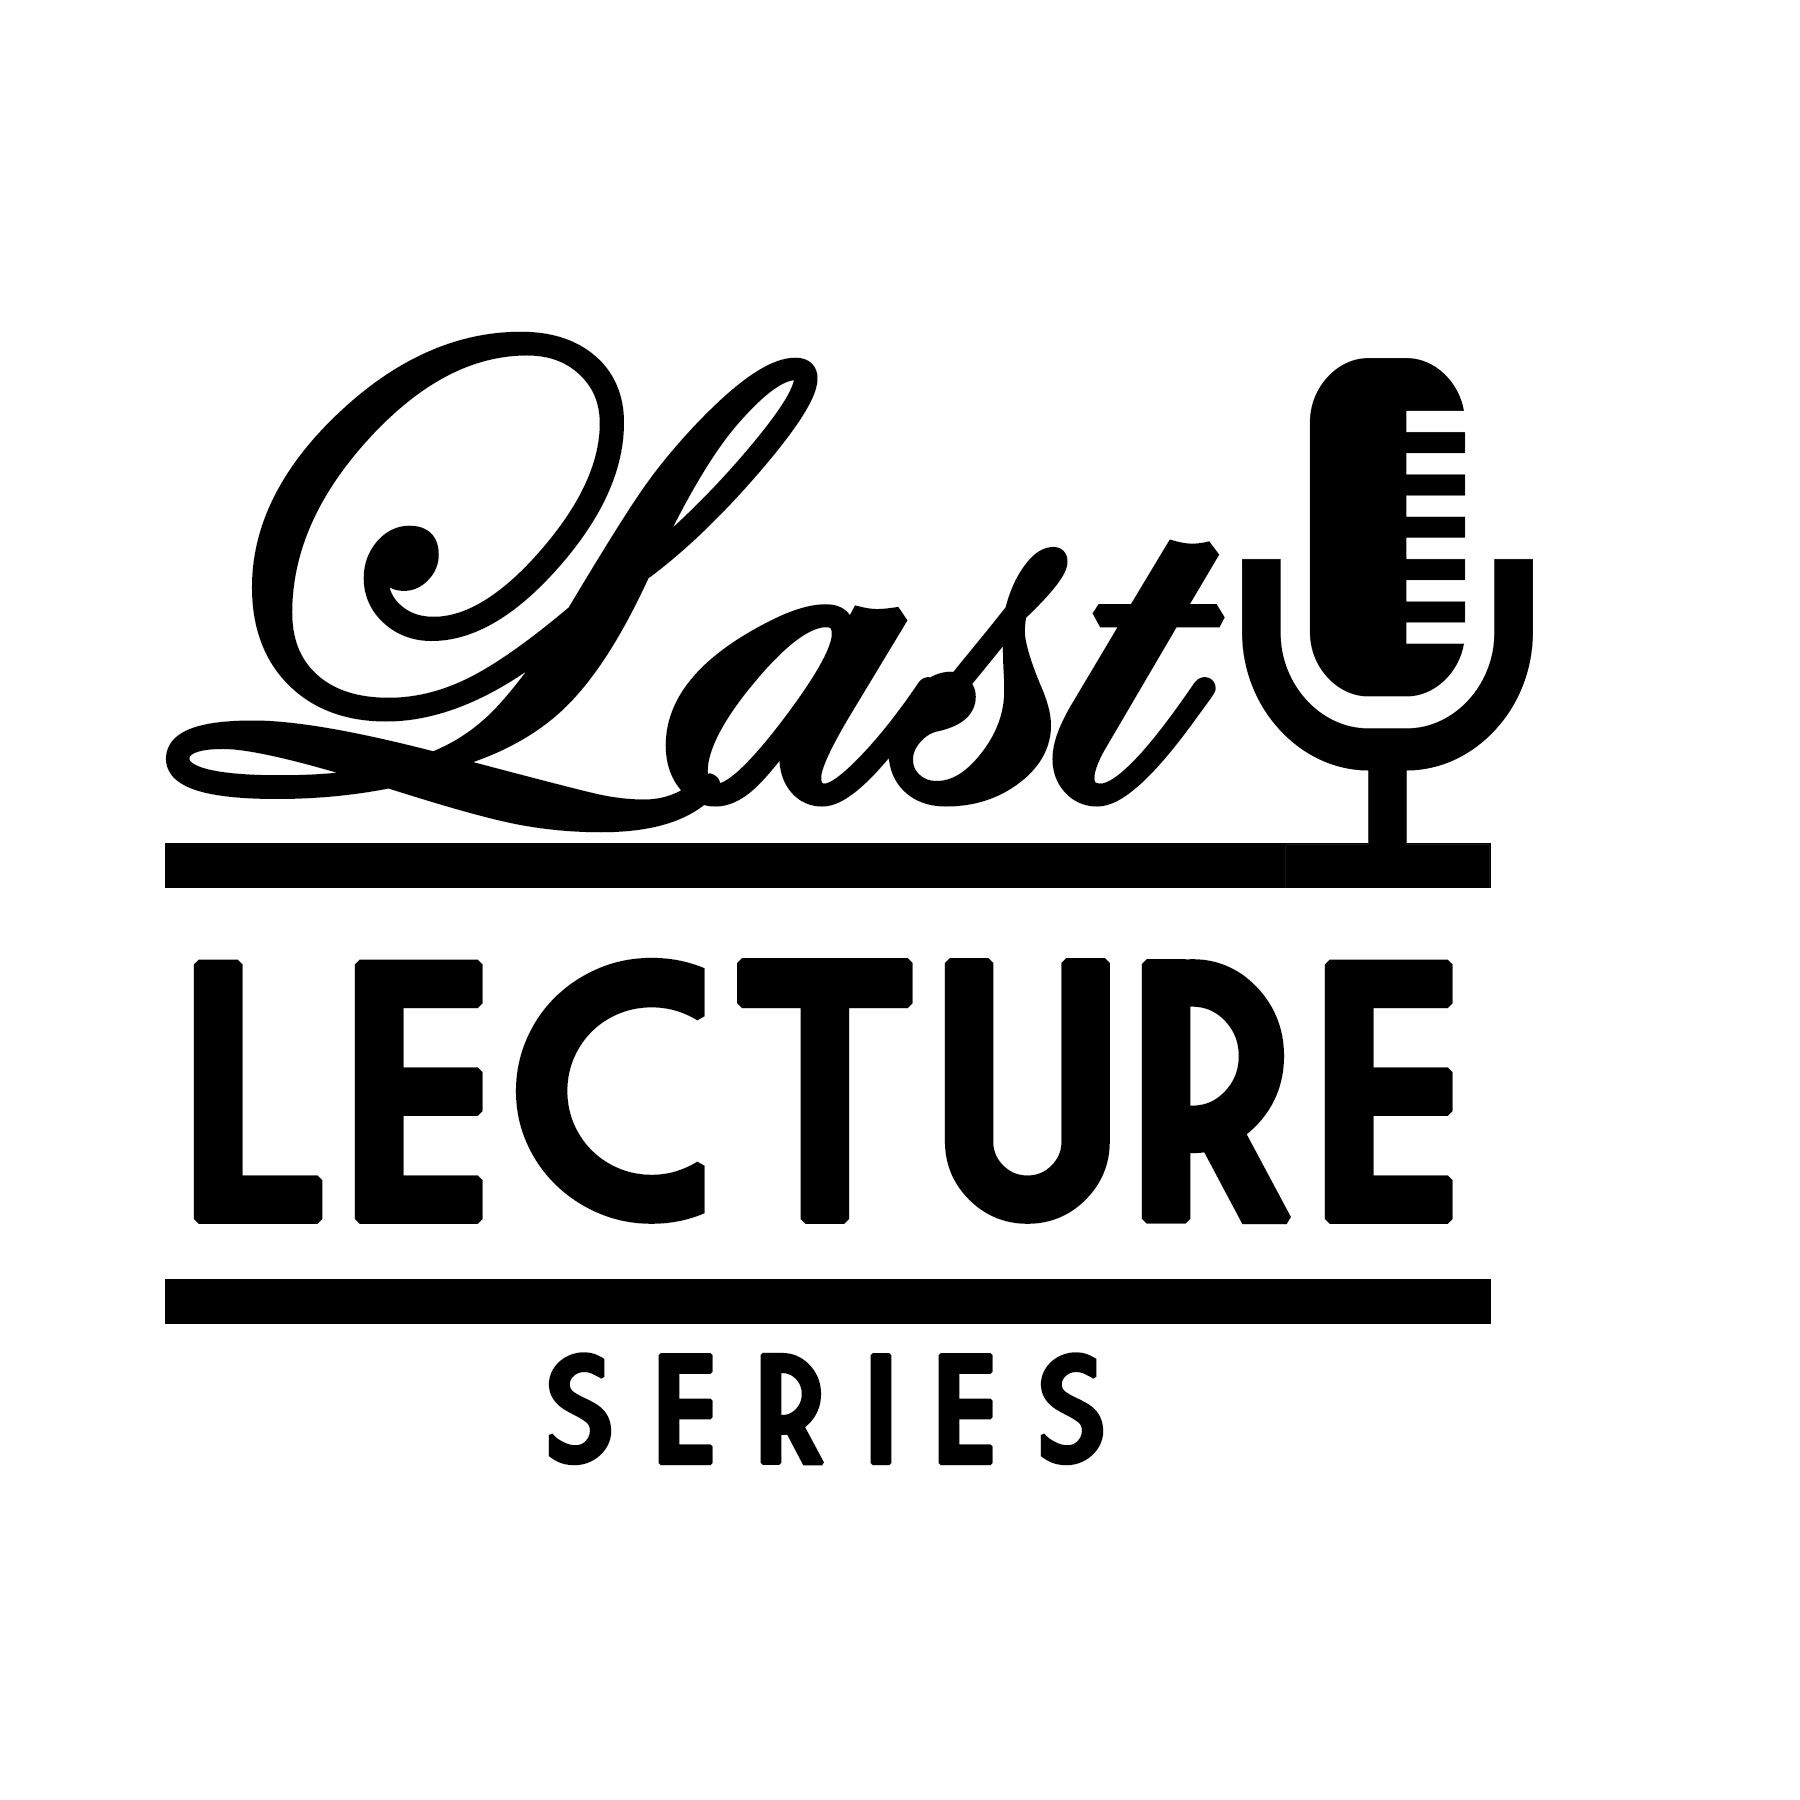 Last Lecture Series: Jacksonville's Big Art Problem with Prof. Dustin Harewood